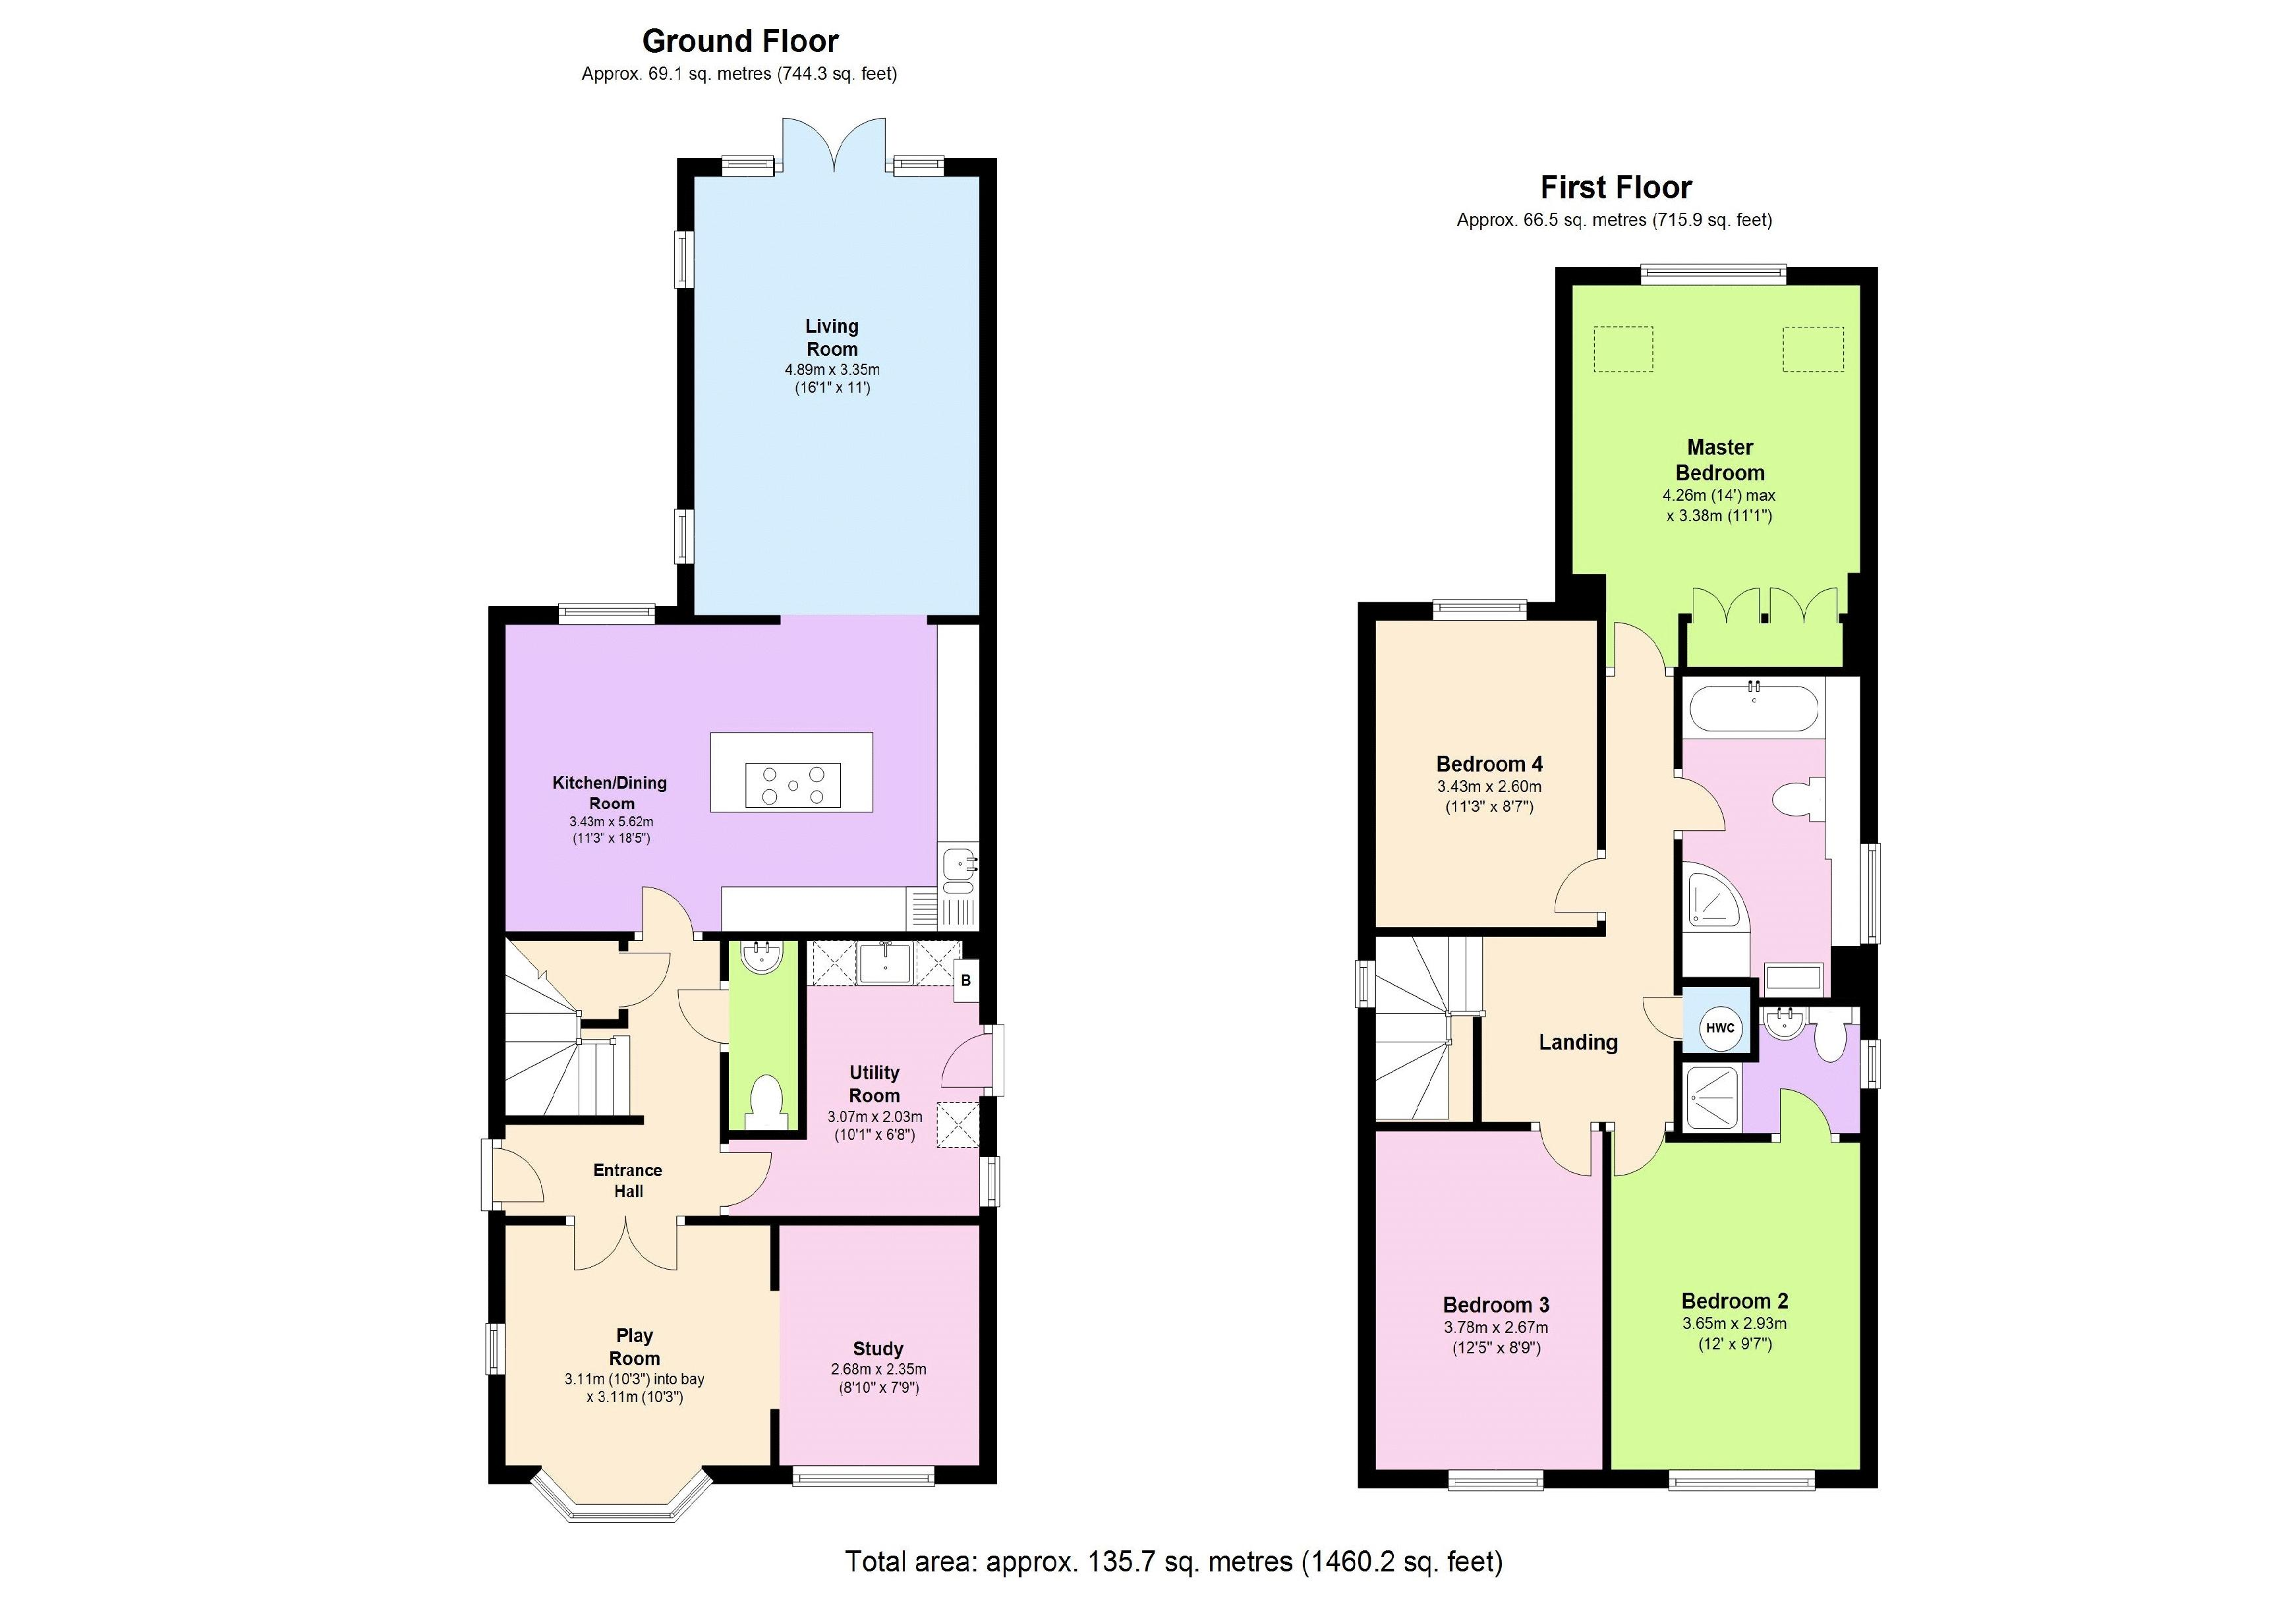 4 bedroom house for sale in biggleswade for How much is a bedroom worth in an appraisal